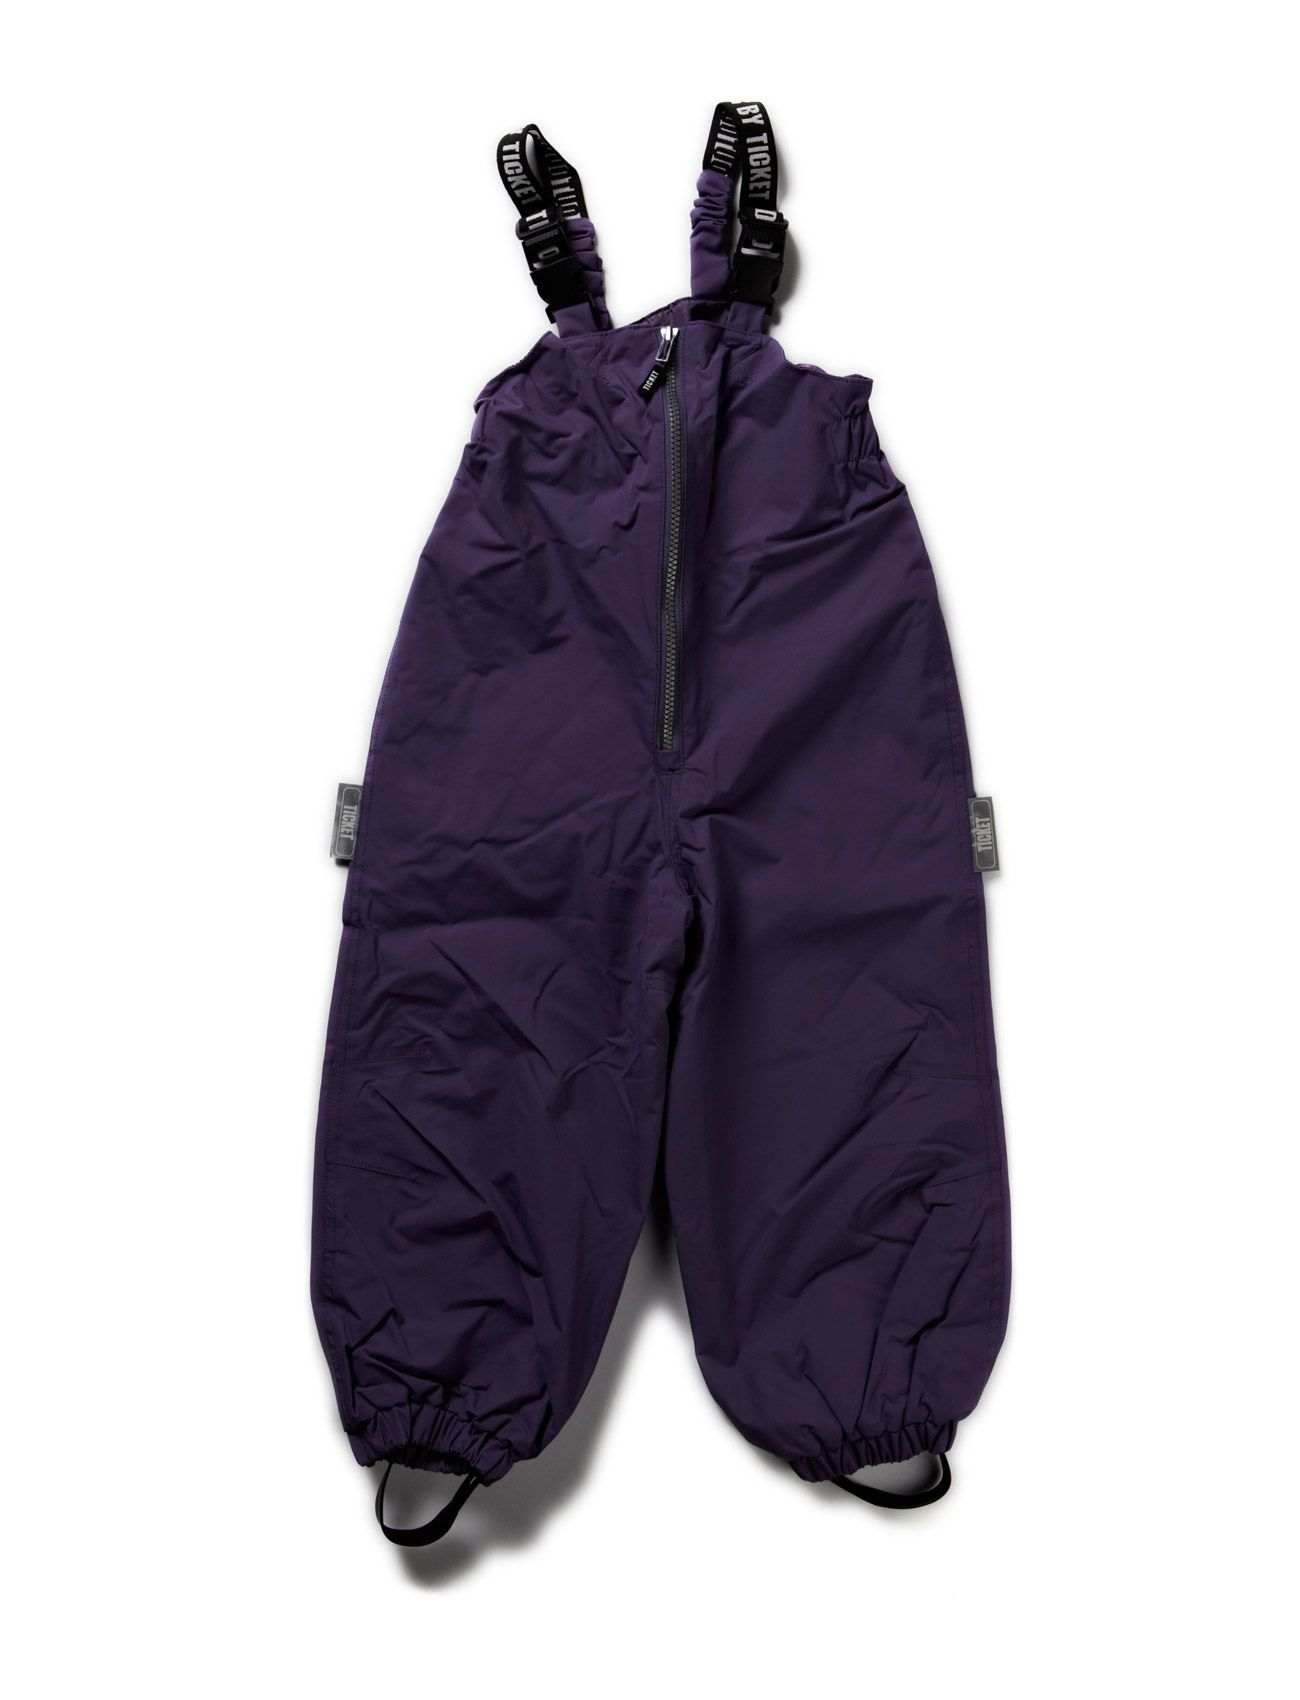 Ticket to Heaven Ontario BIB pant